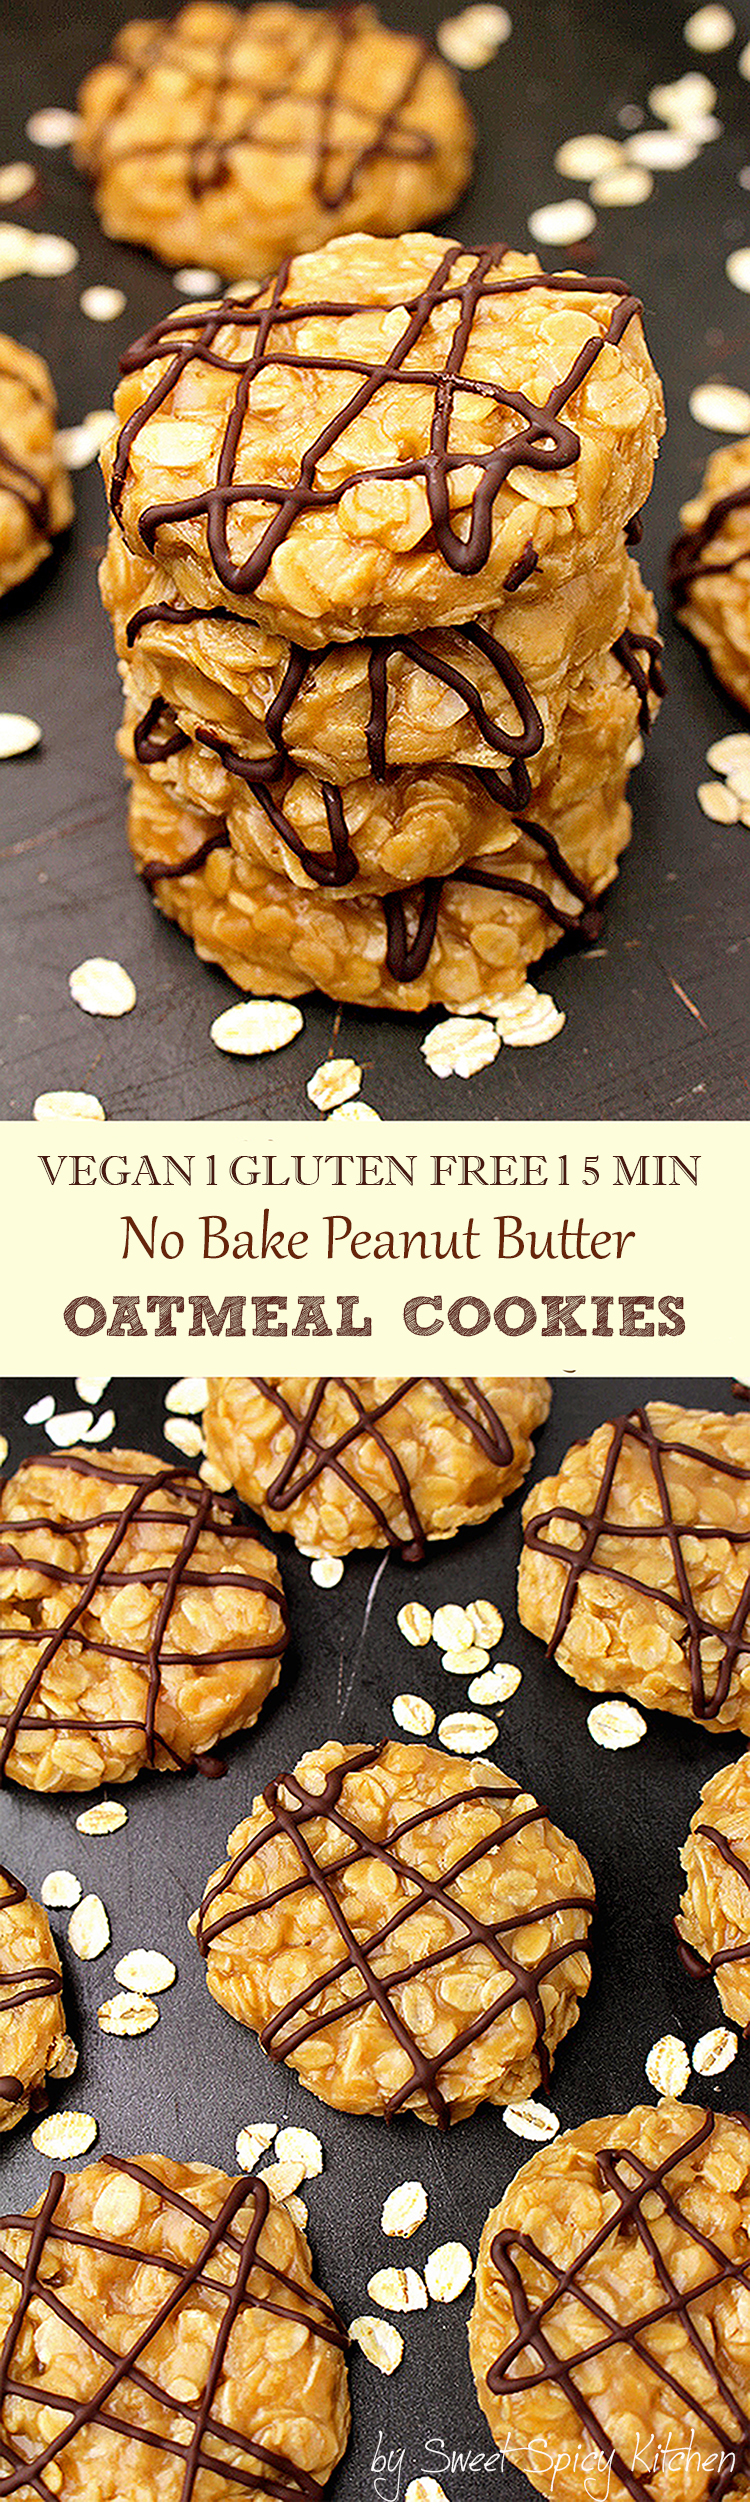 Untitled-167 No Bake Vegan Peanut Butter Oatmeal Cookies